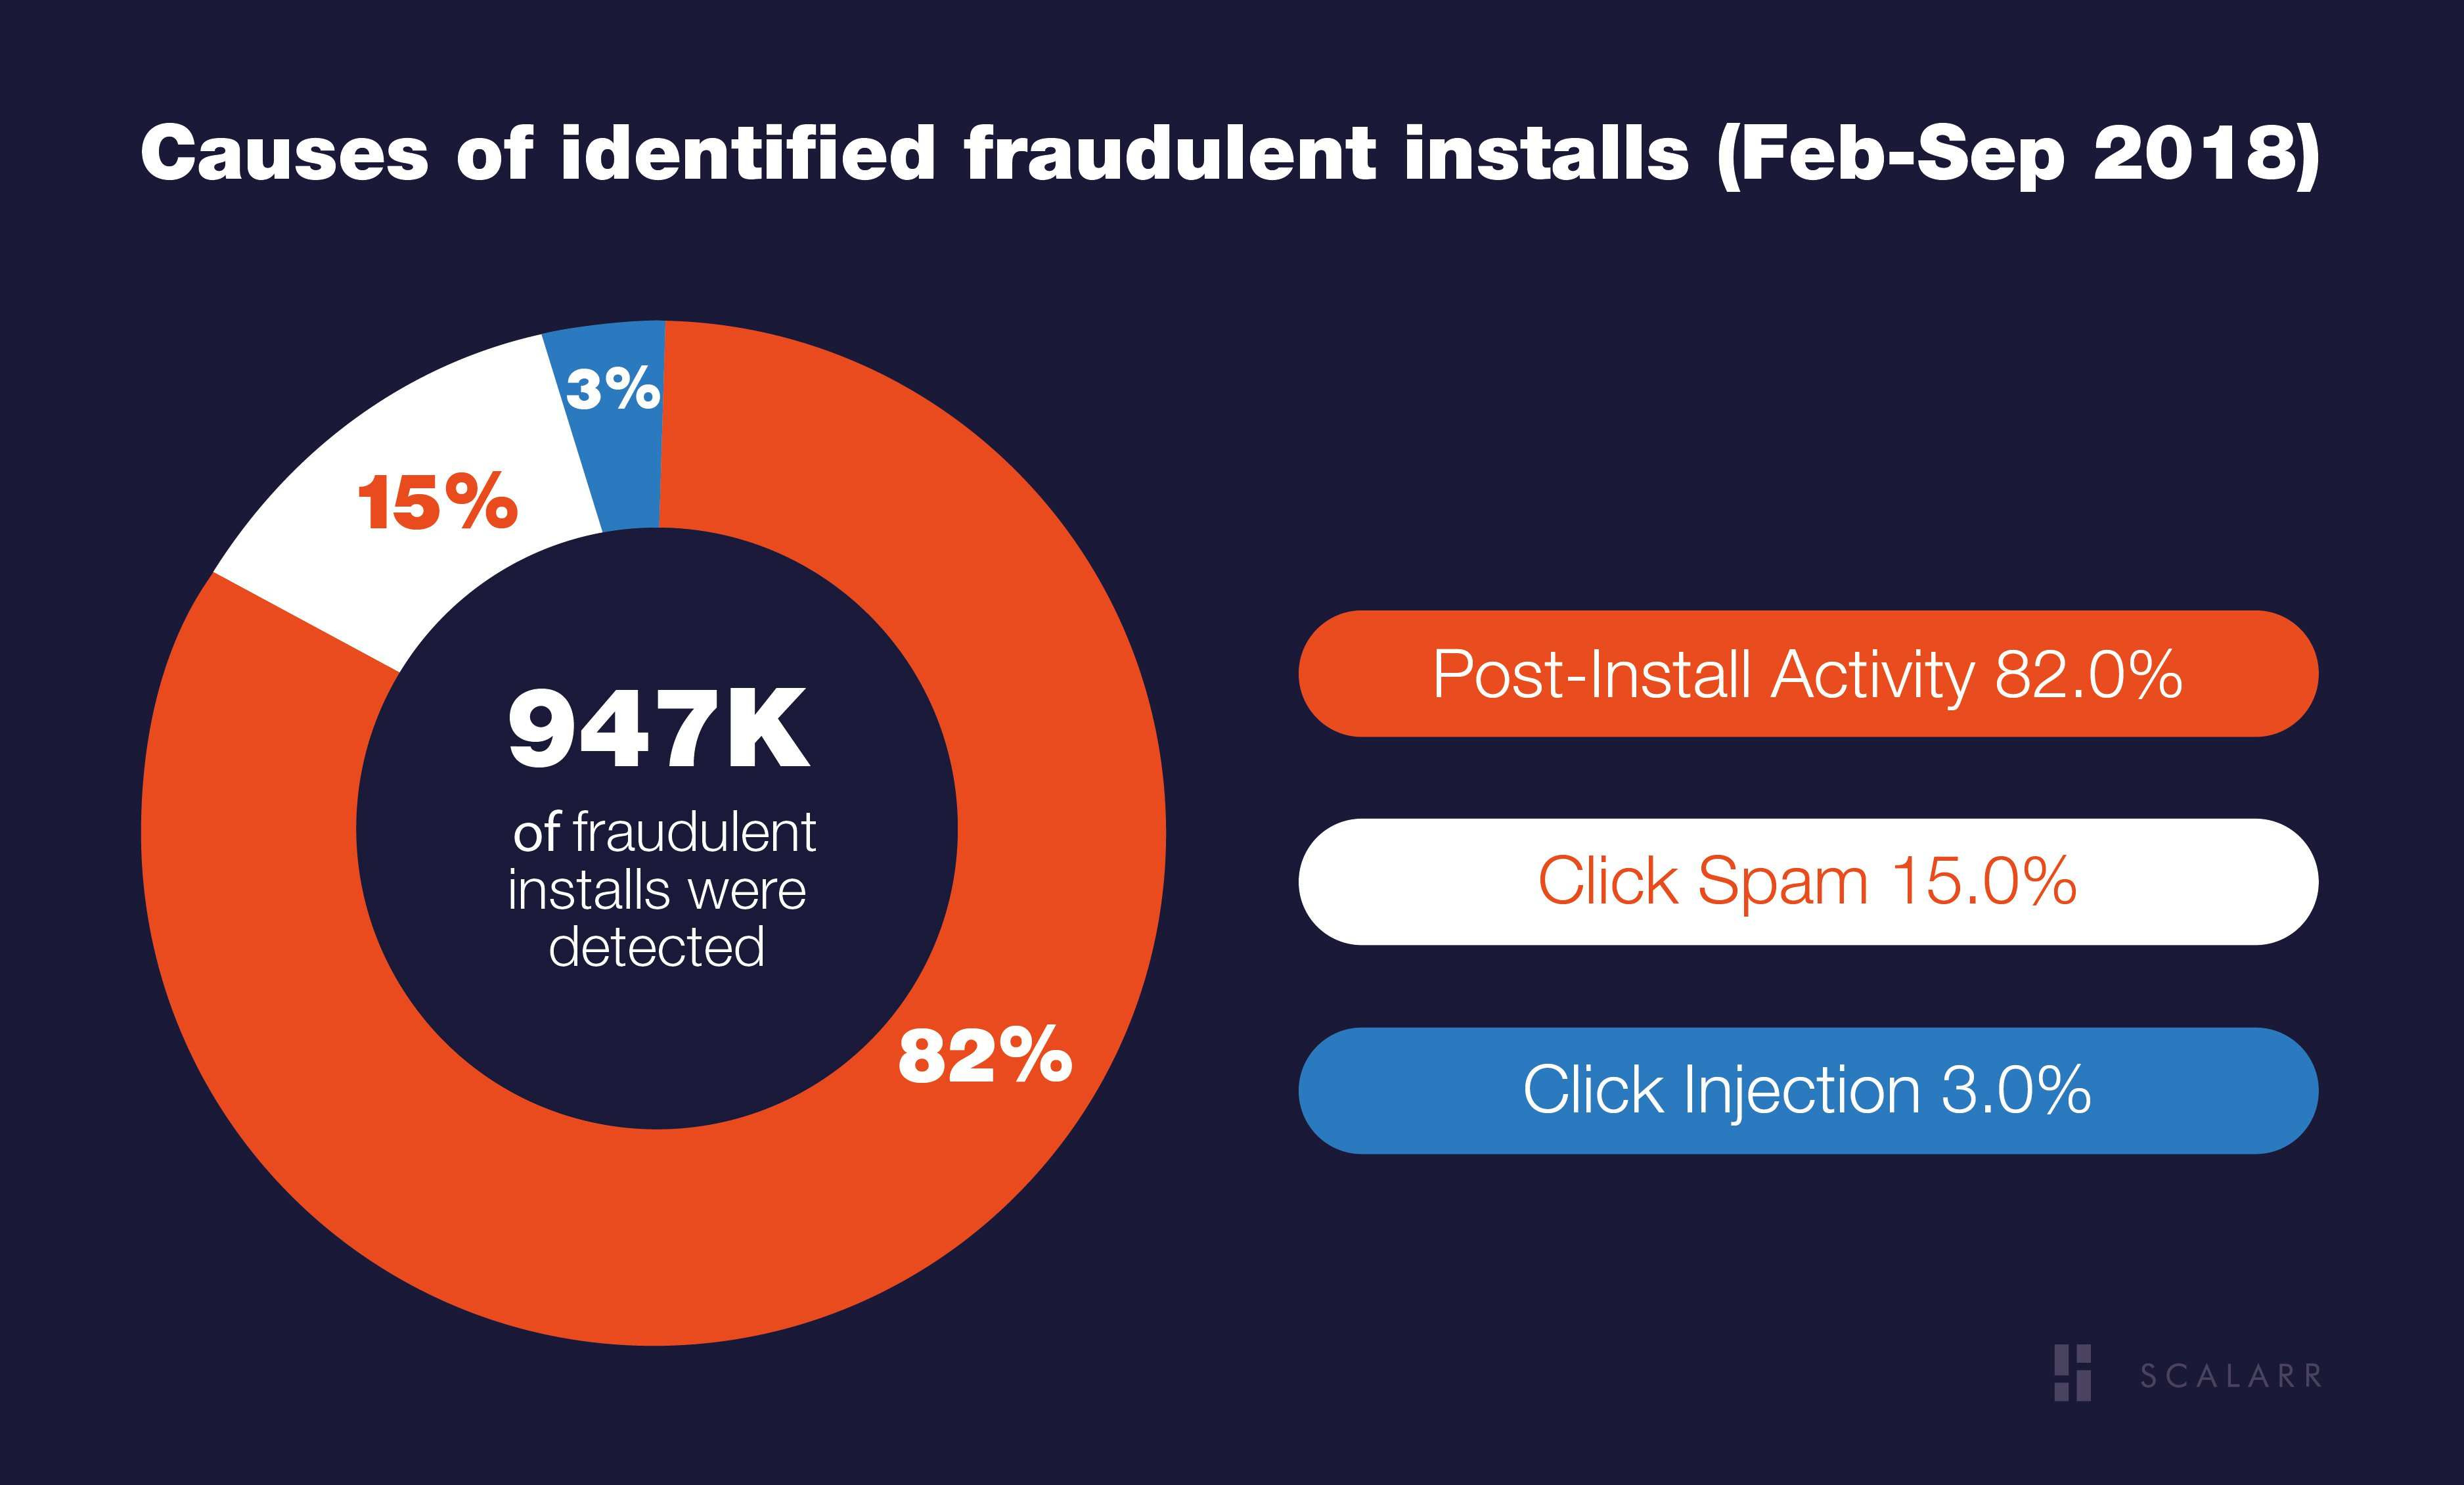 Causes of identified fraudulent installs